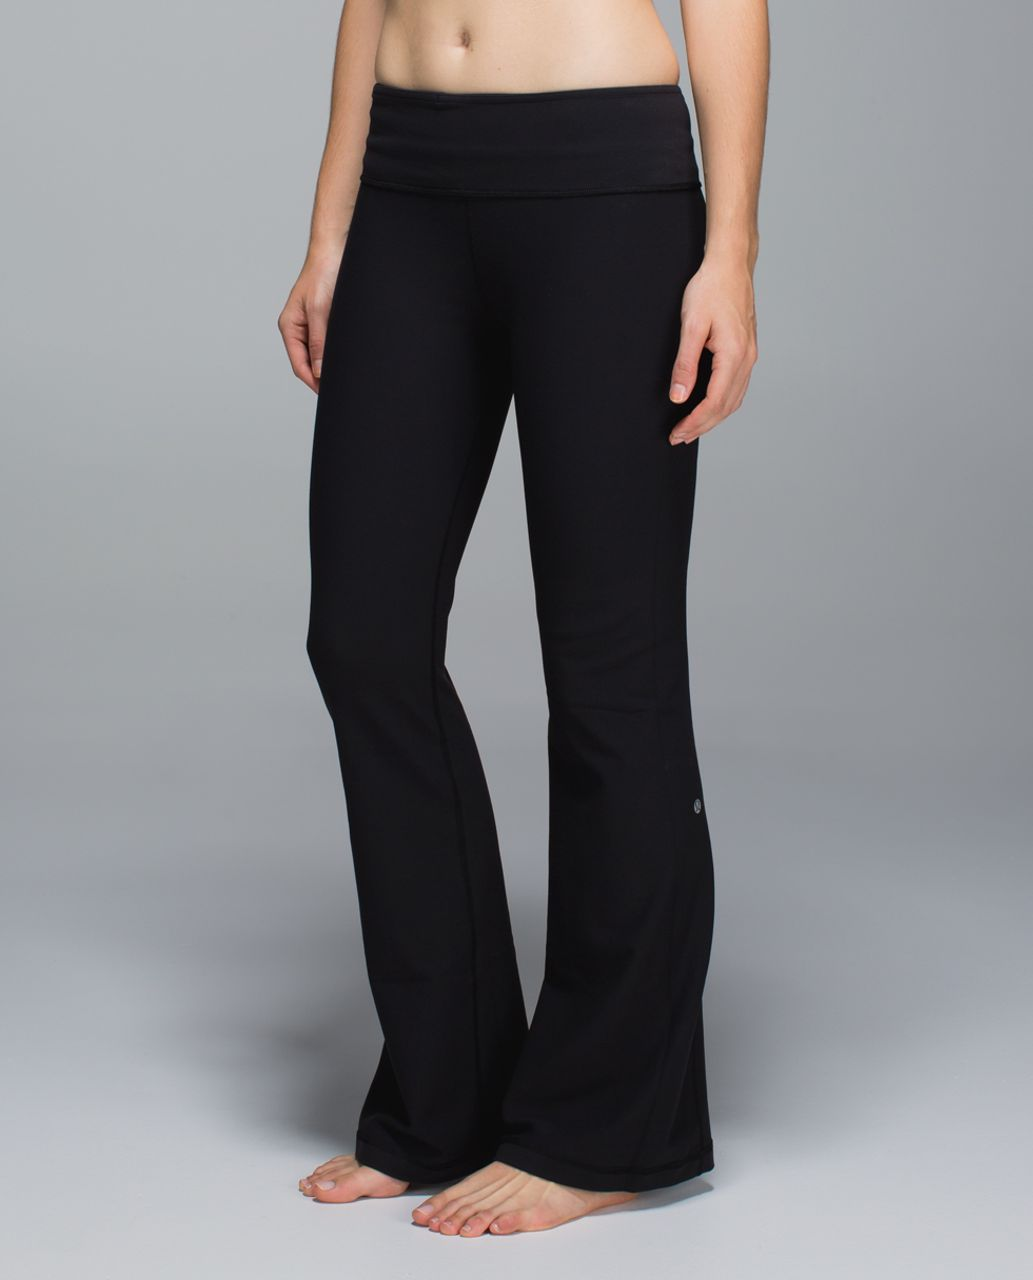 Lululemon Groove Pant *Full-On Luon (Tall) - Black / Boom Juice